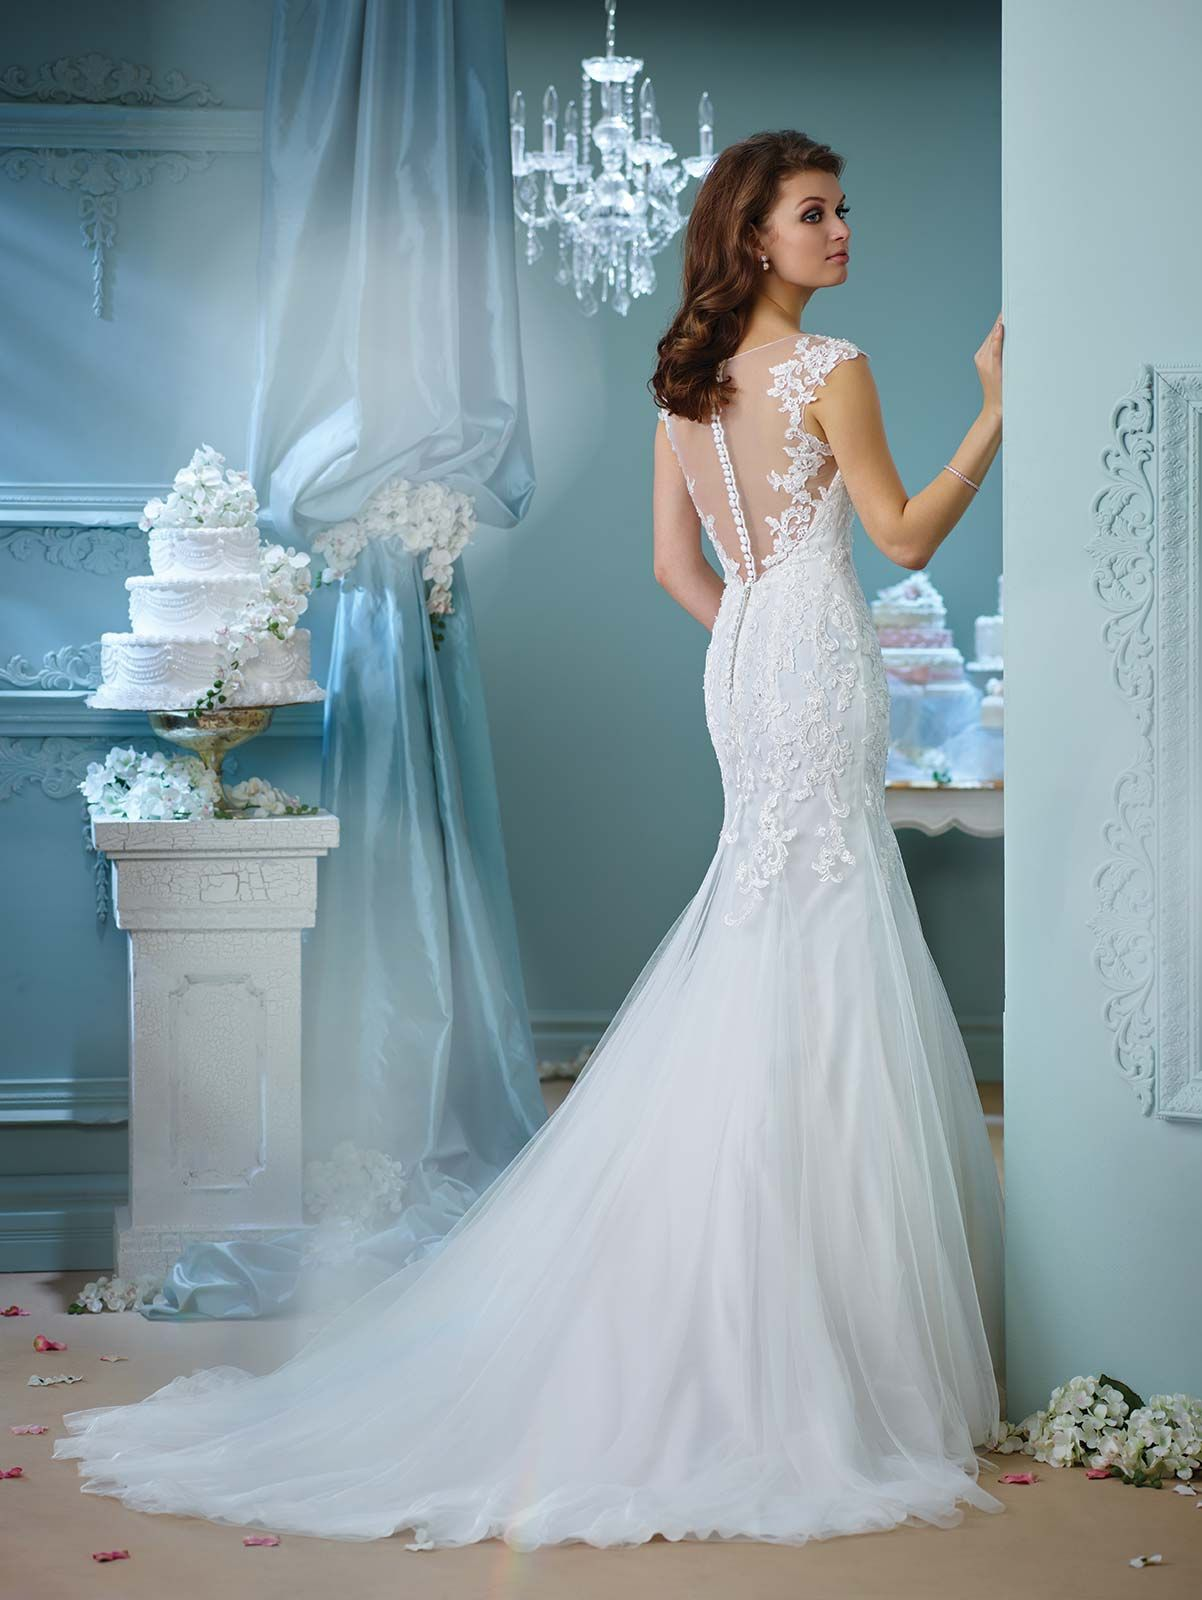 Enchanting 216156 | Mon Cheri Bridals | Dress | Pinterest